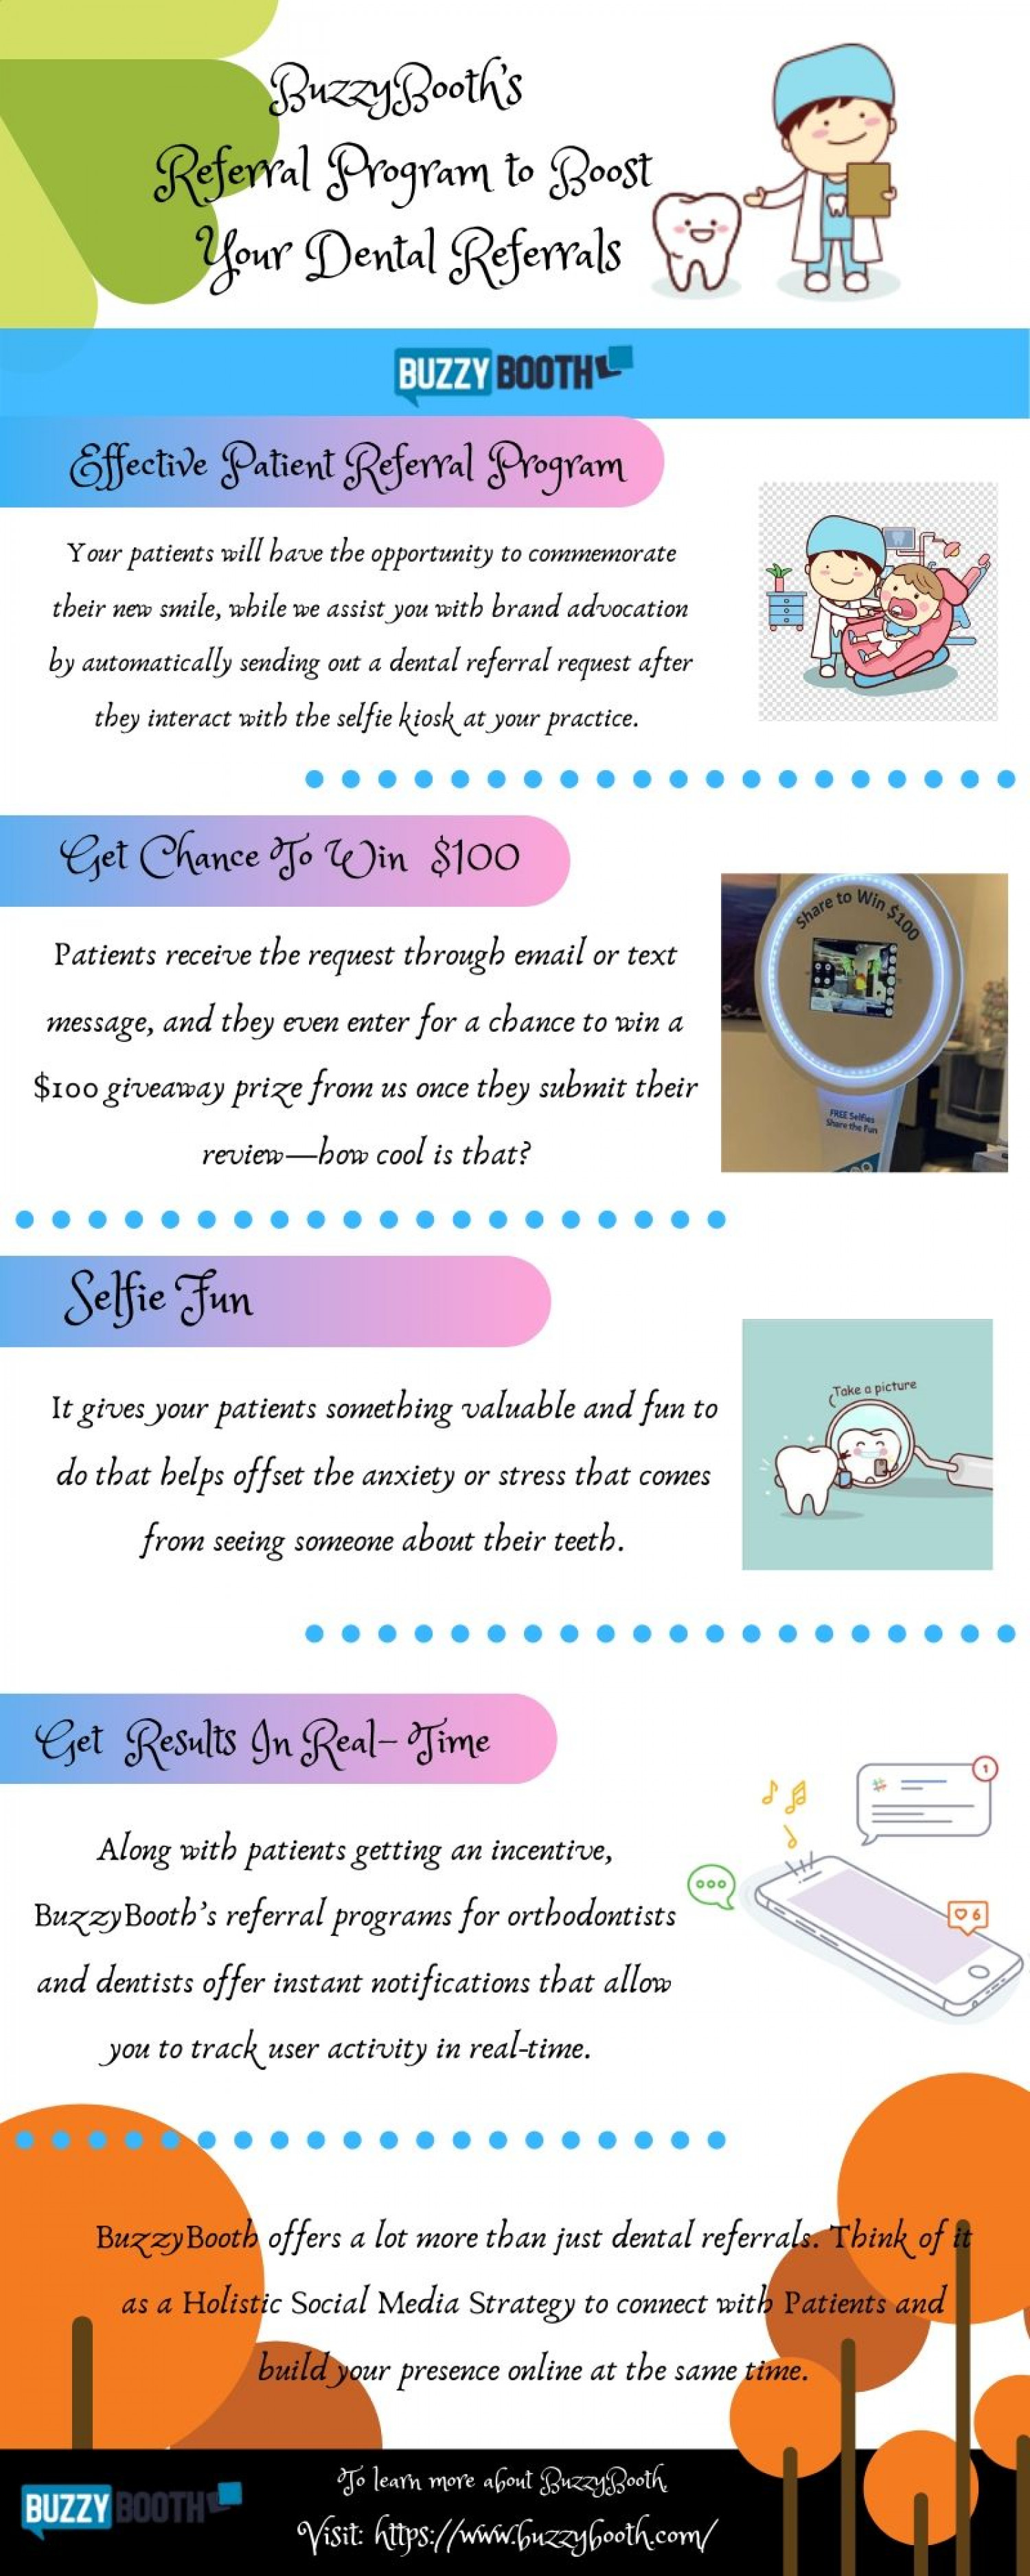 Ditch Word-of-Mouth and Boost Dental Referrals with BuzzyBooth Infographic